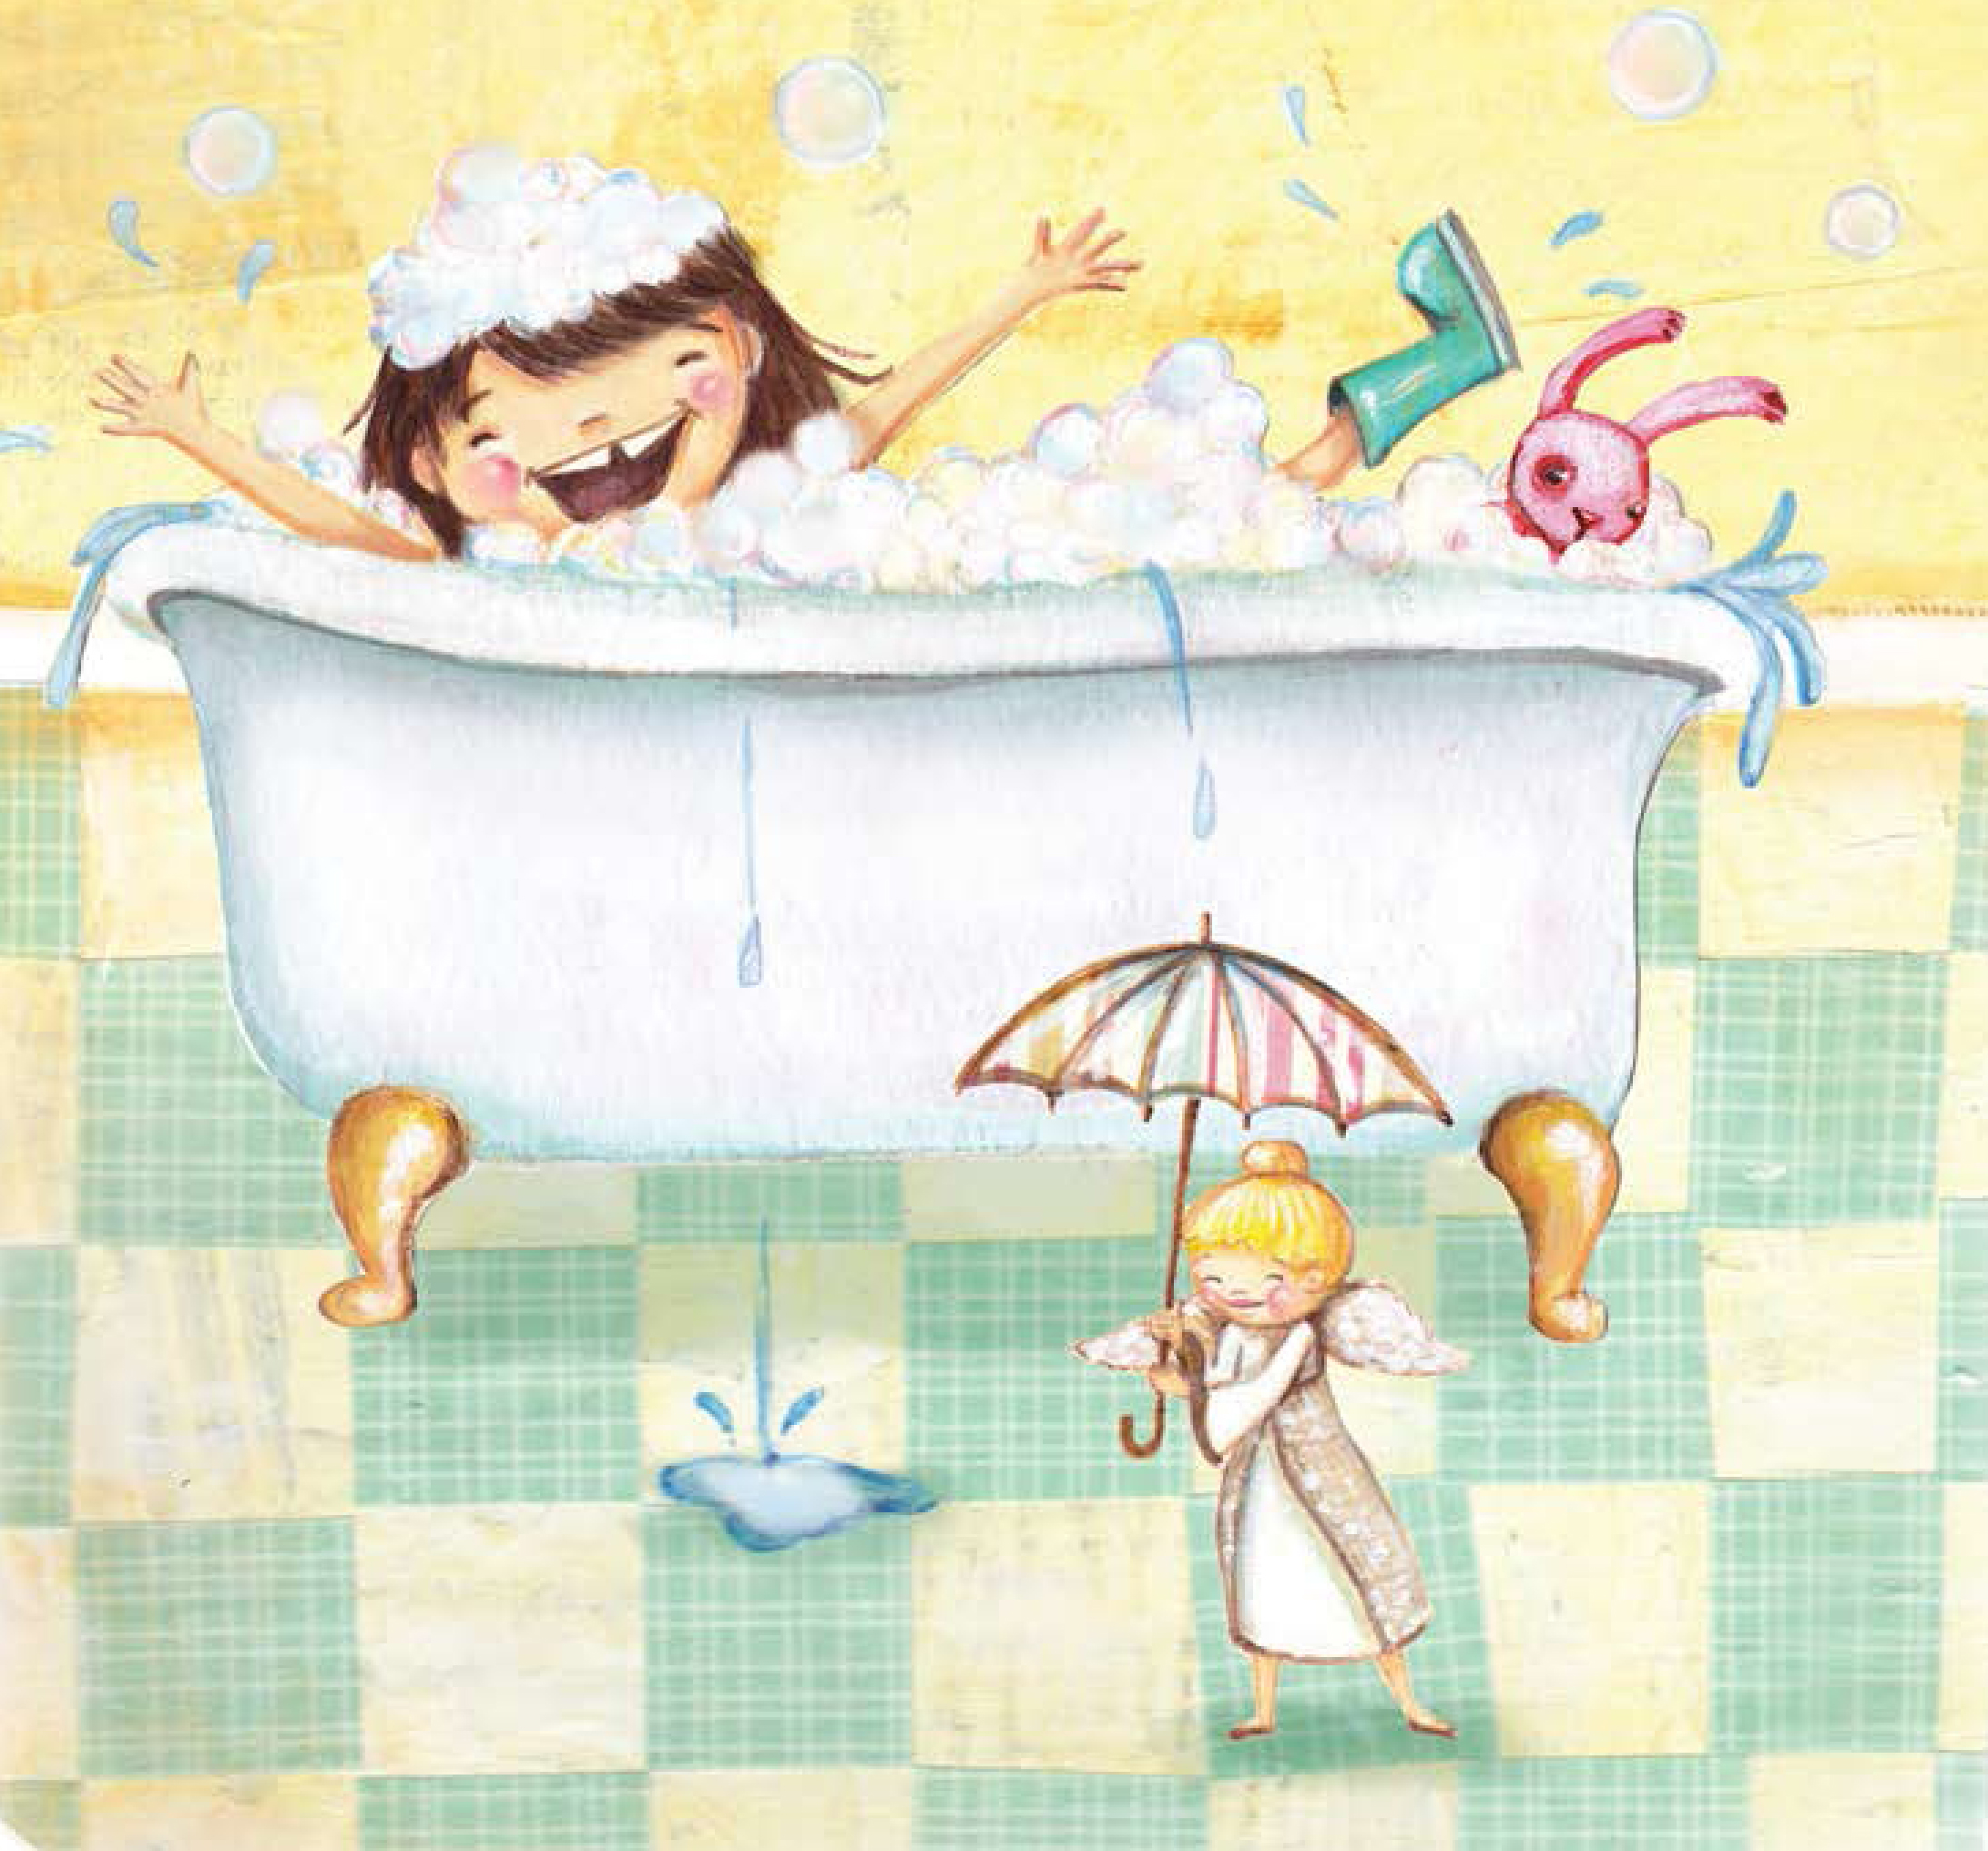 The ultimate bedtime routine for young children